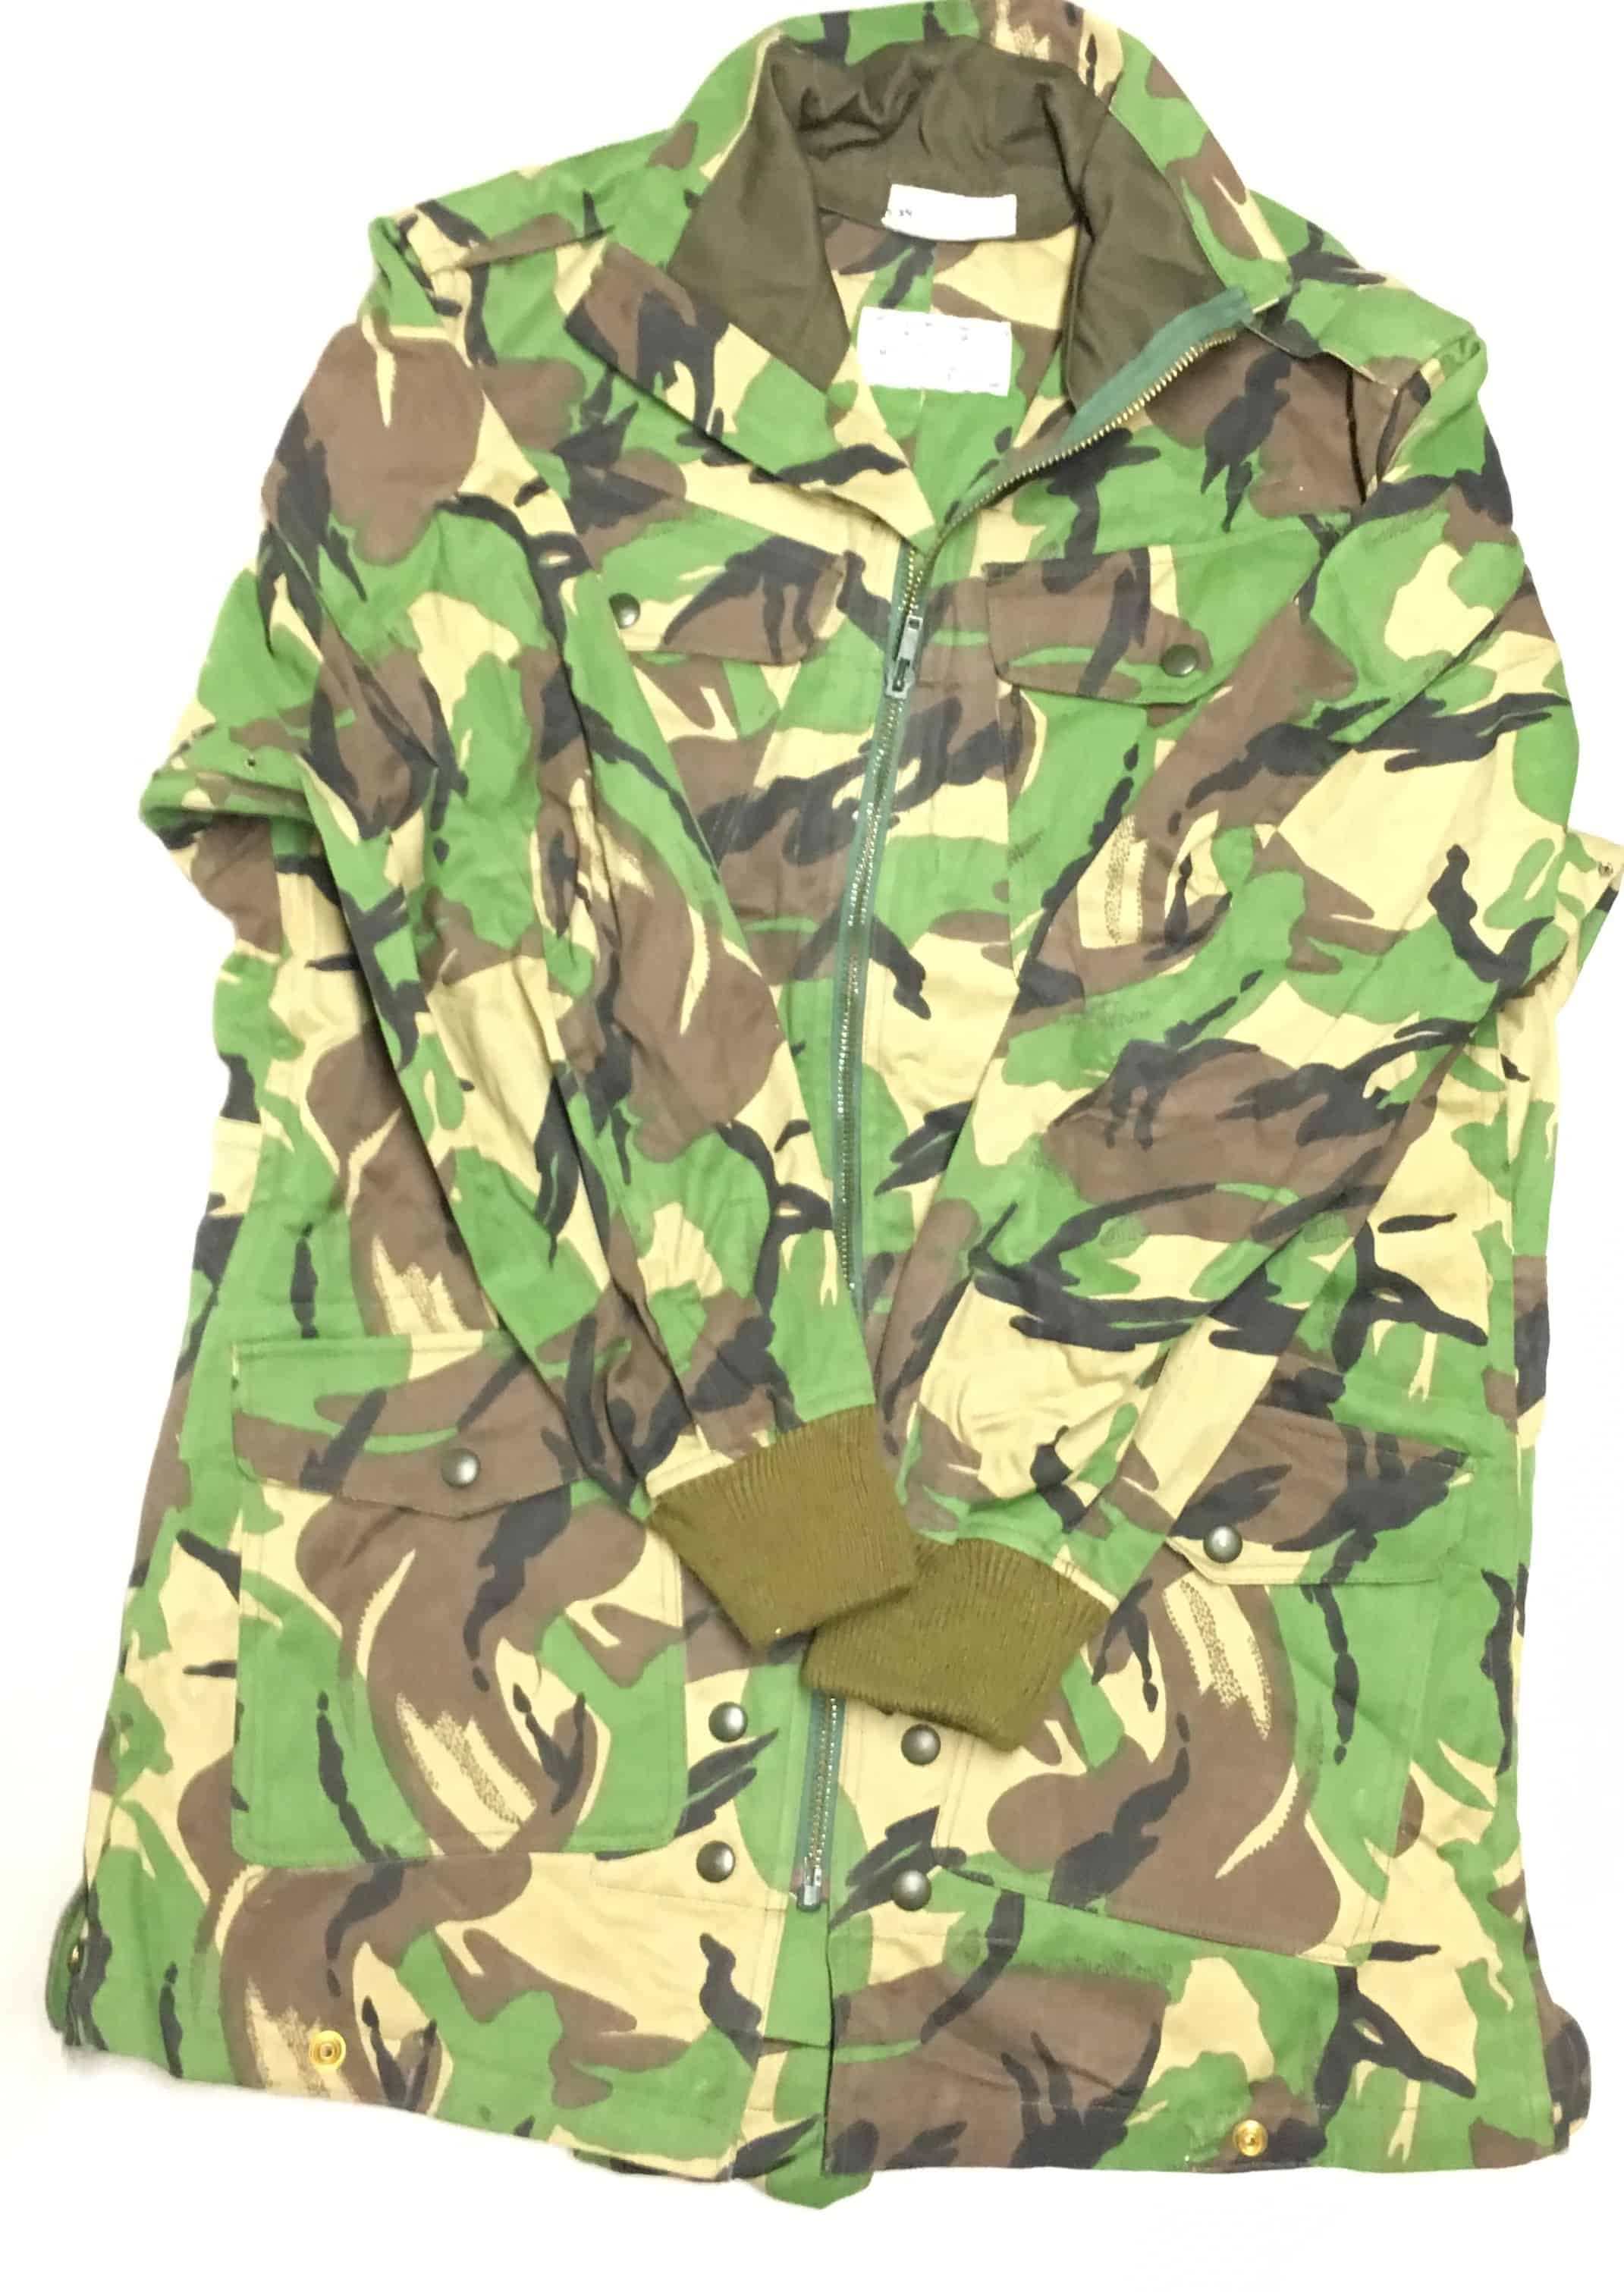 fddac91ecc4d0 Iraqi Special Forces Republican Guard Thunder Troops Paratrooper Jump Smock  DPM Camouflage Medium Romanian Size 48 - Enemy Militaria